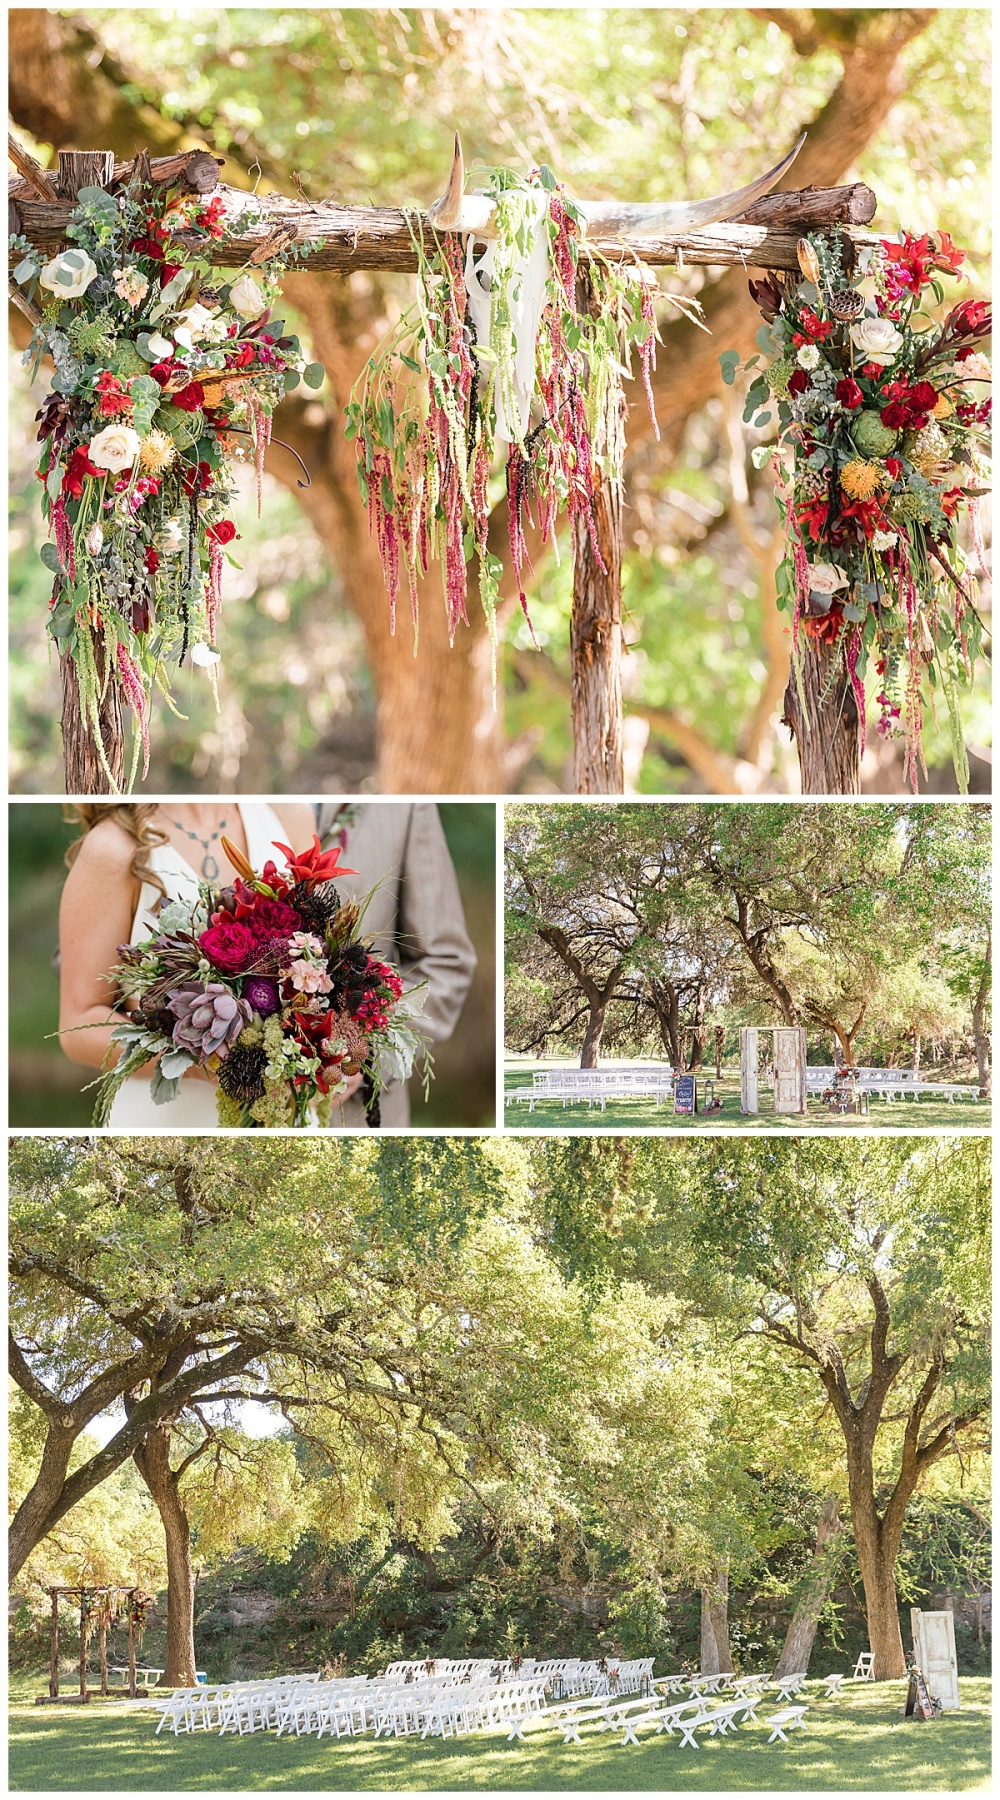 Eagle-Dancer-Ranch-Boerne-Texas-Wedding-Party-Barn-Carly-Barton-Photography_0004.jpg